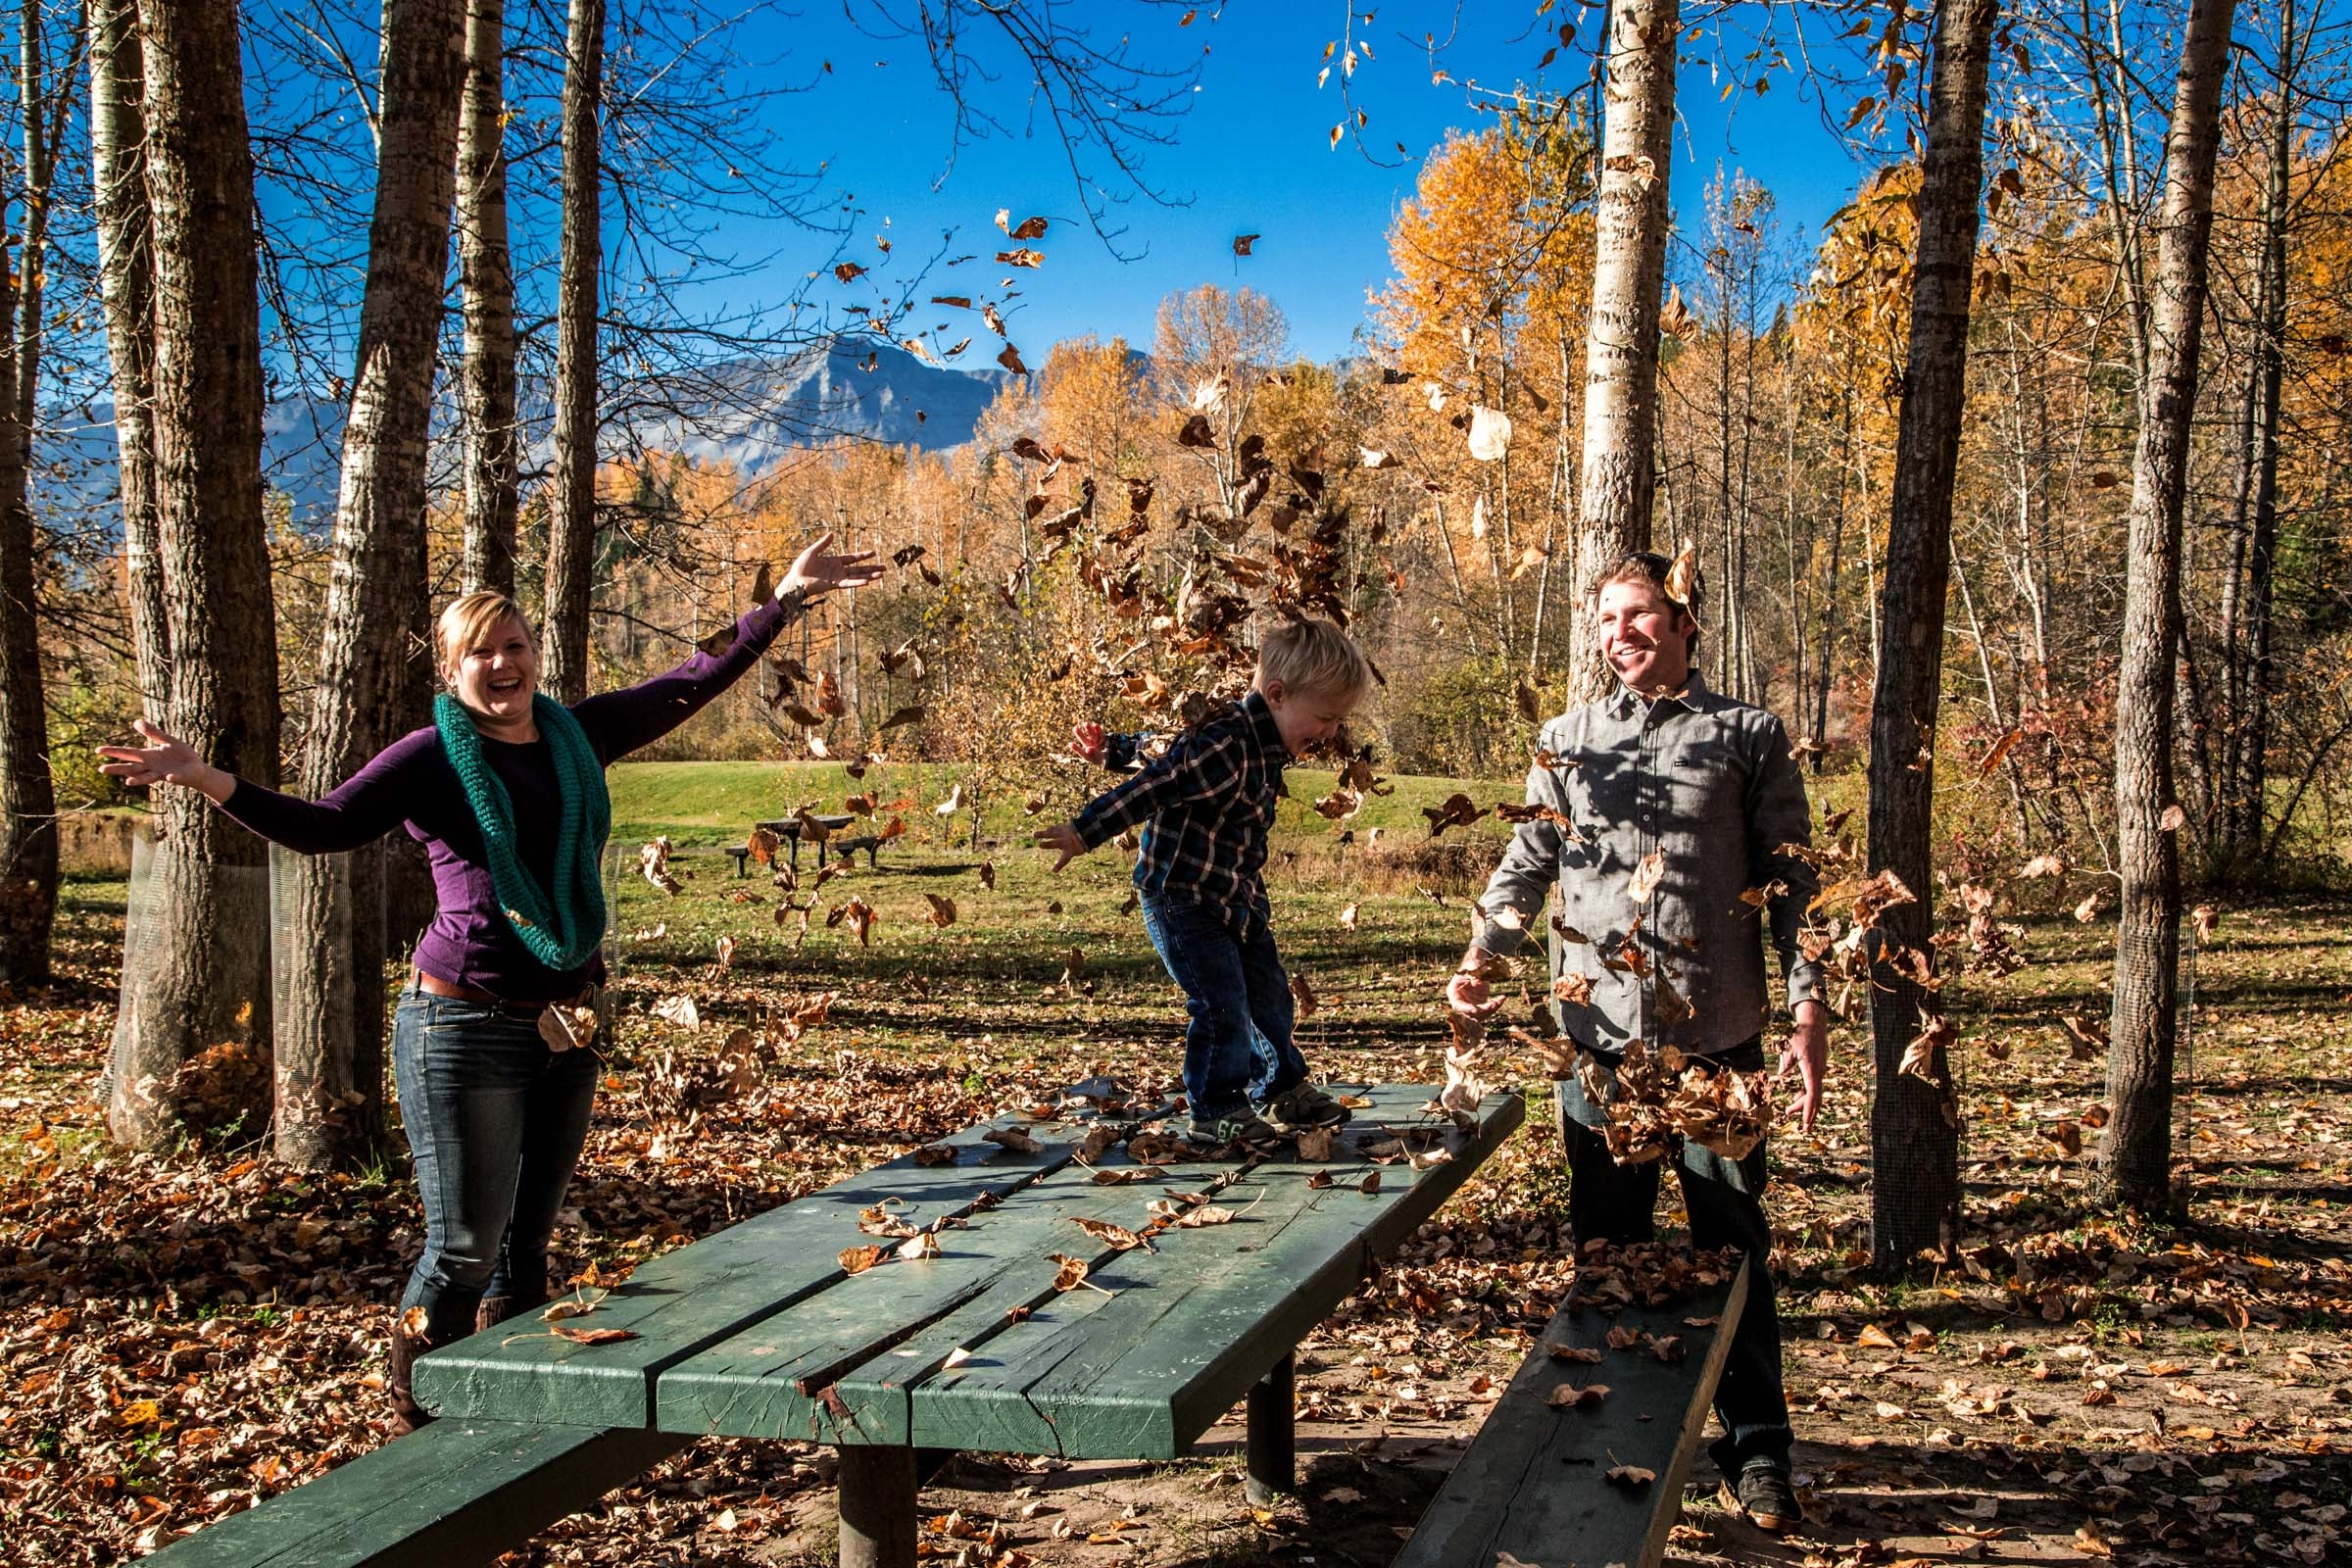 Don't miss out on Fernie's Fall Season